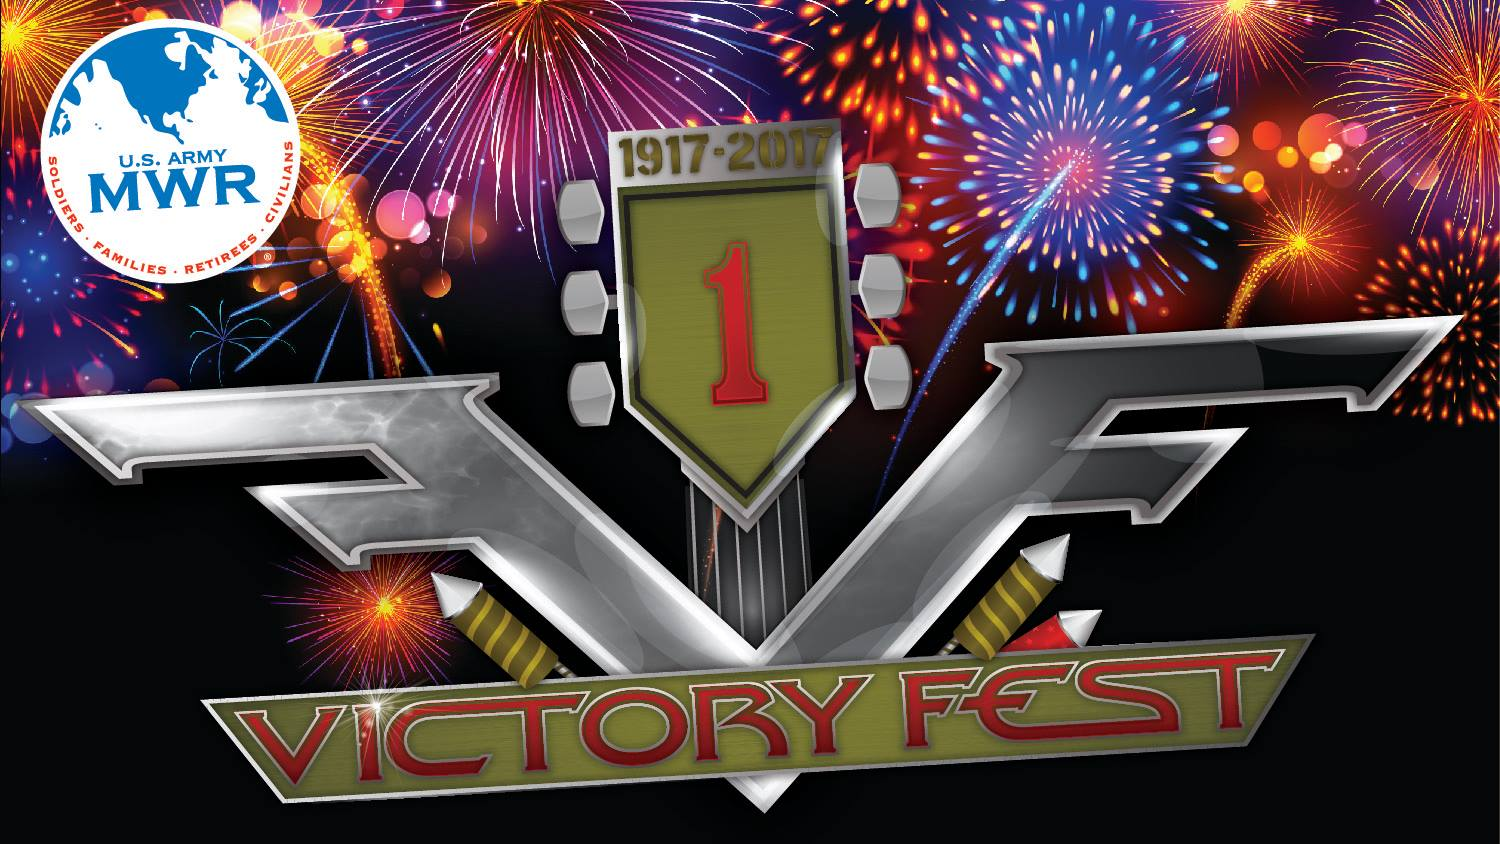 victory fest logo